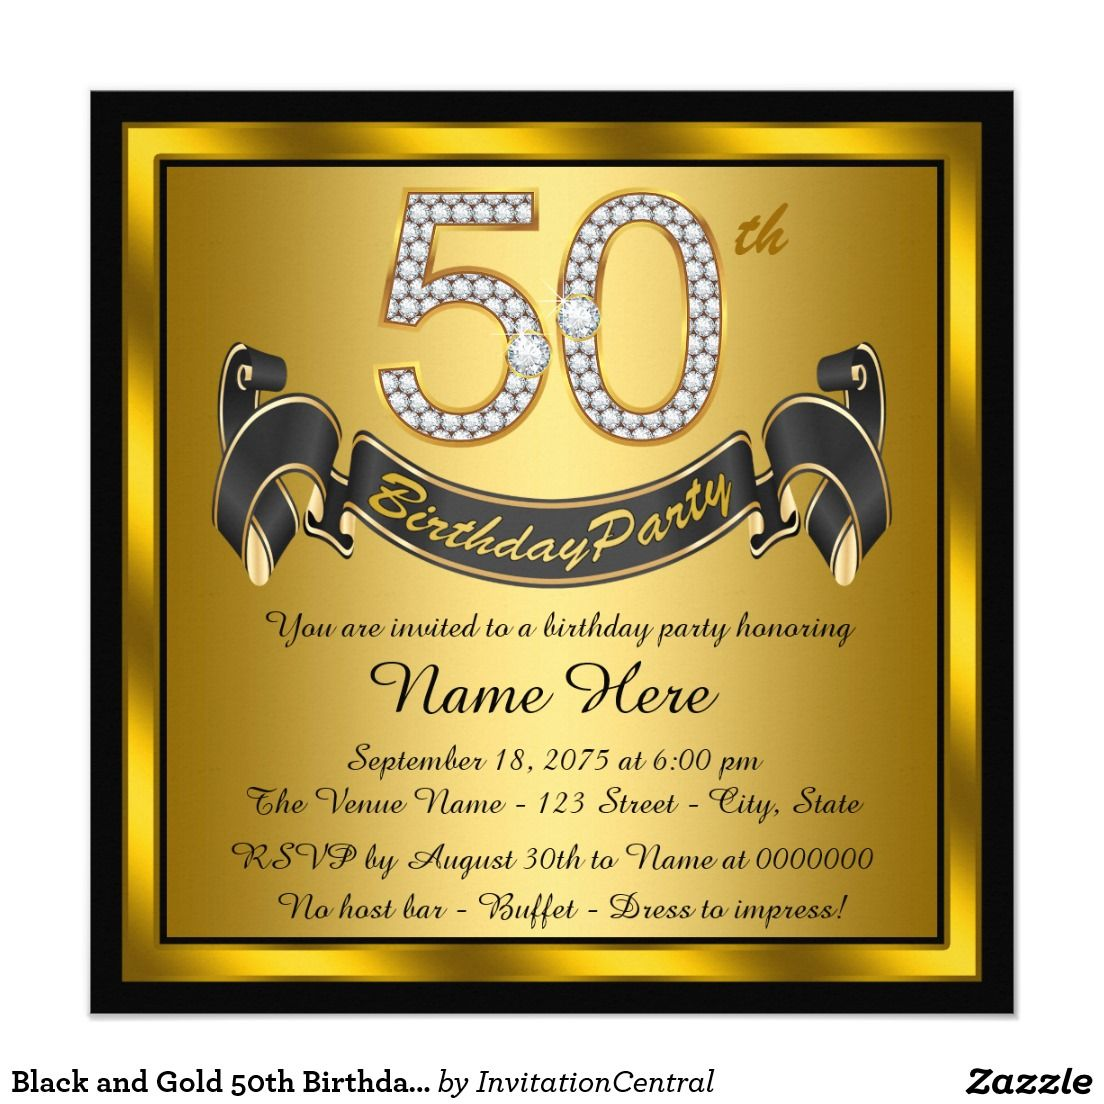 Black and Gold 50th Birthday Party Card | 50 birthday parties ...